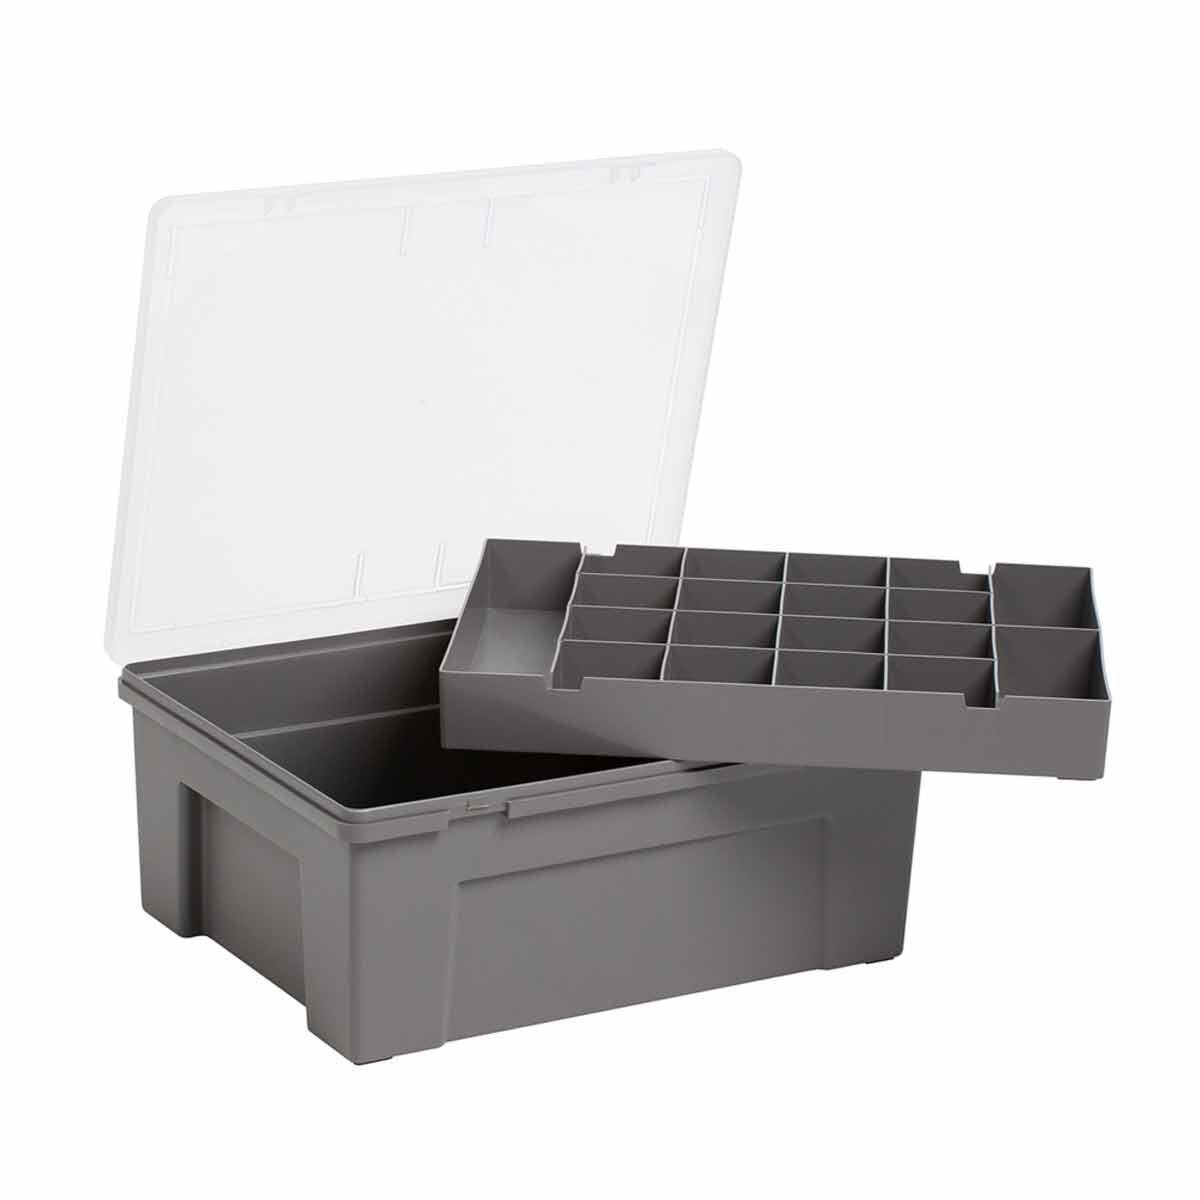 Wham Bam Organiser Box with 19 Compartments